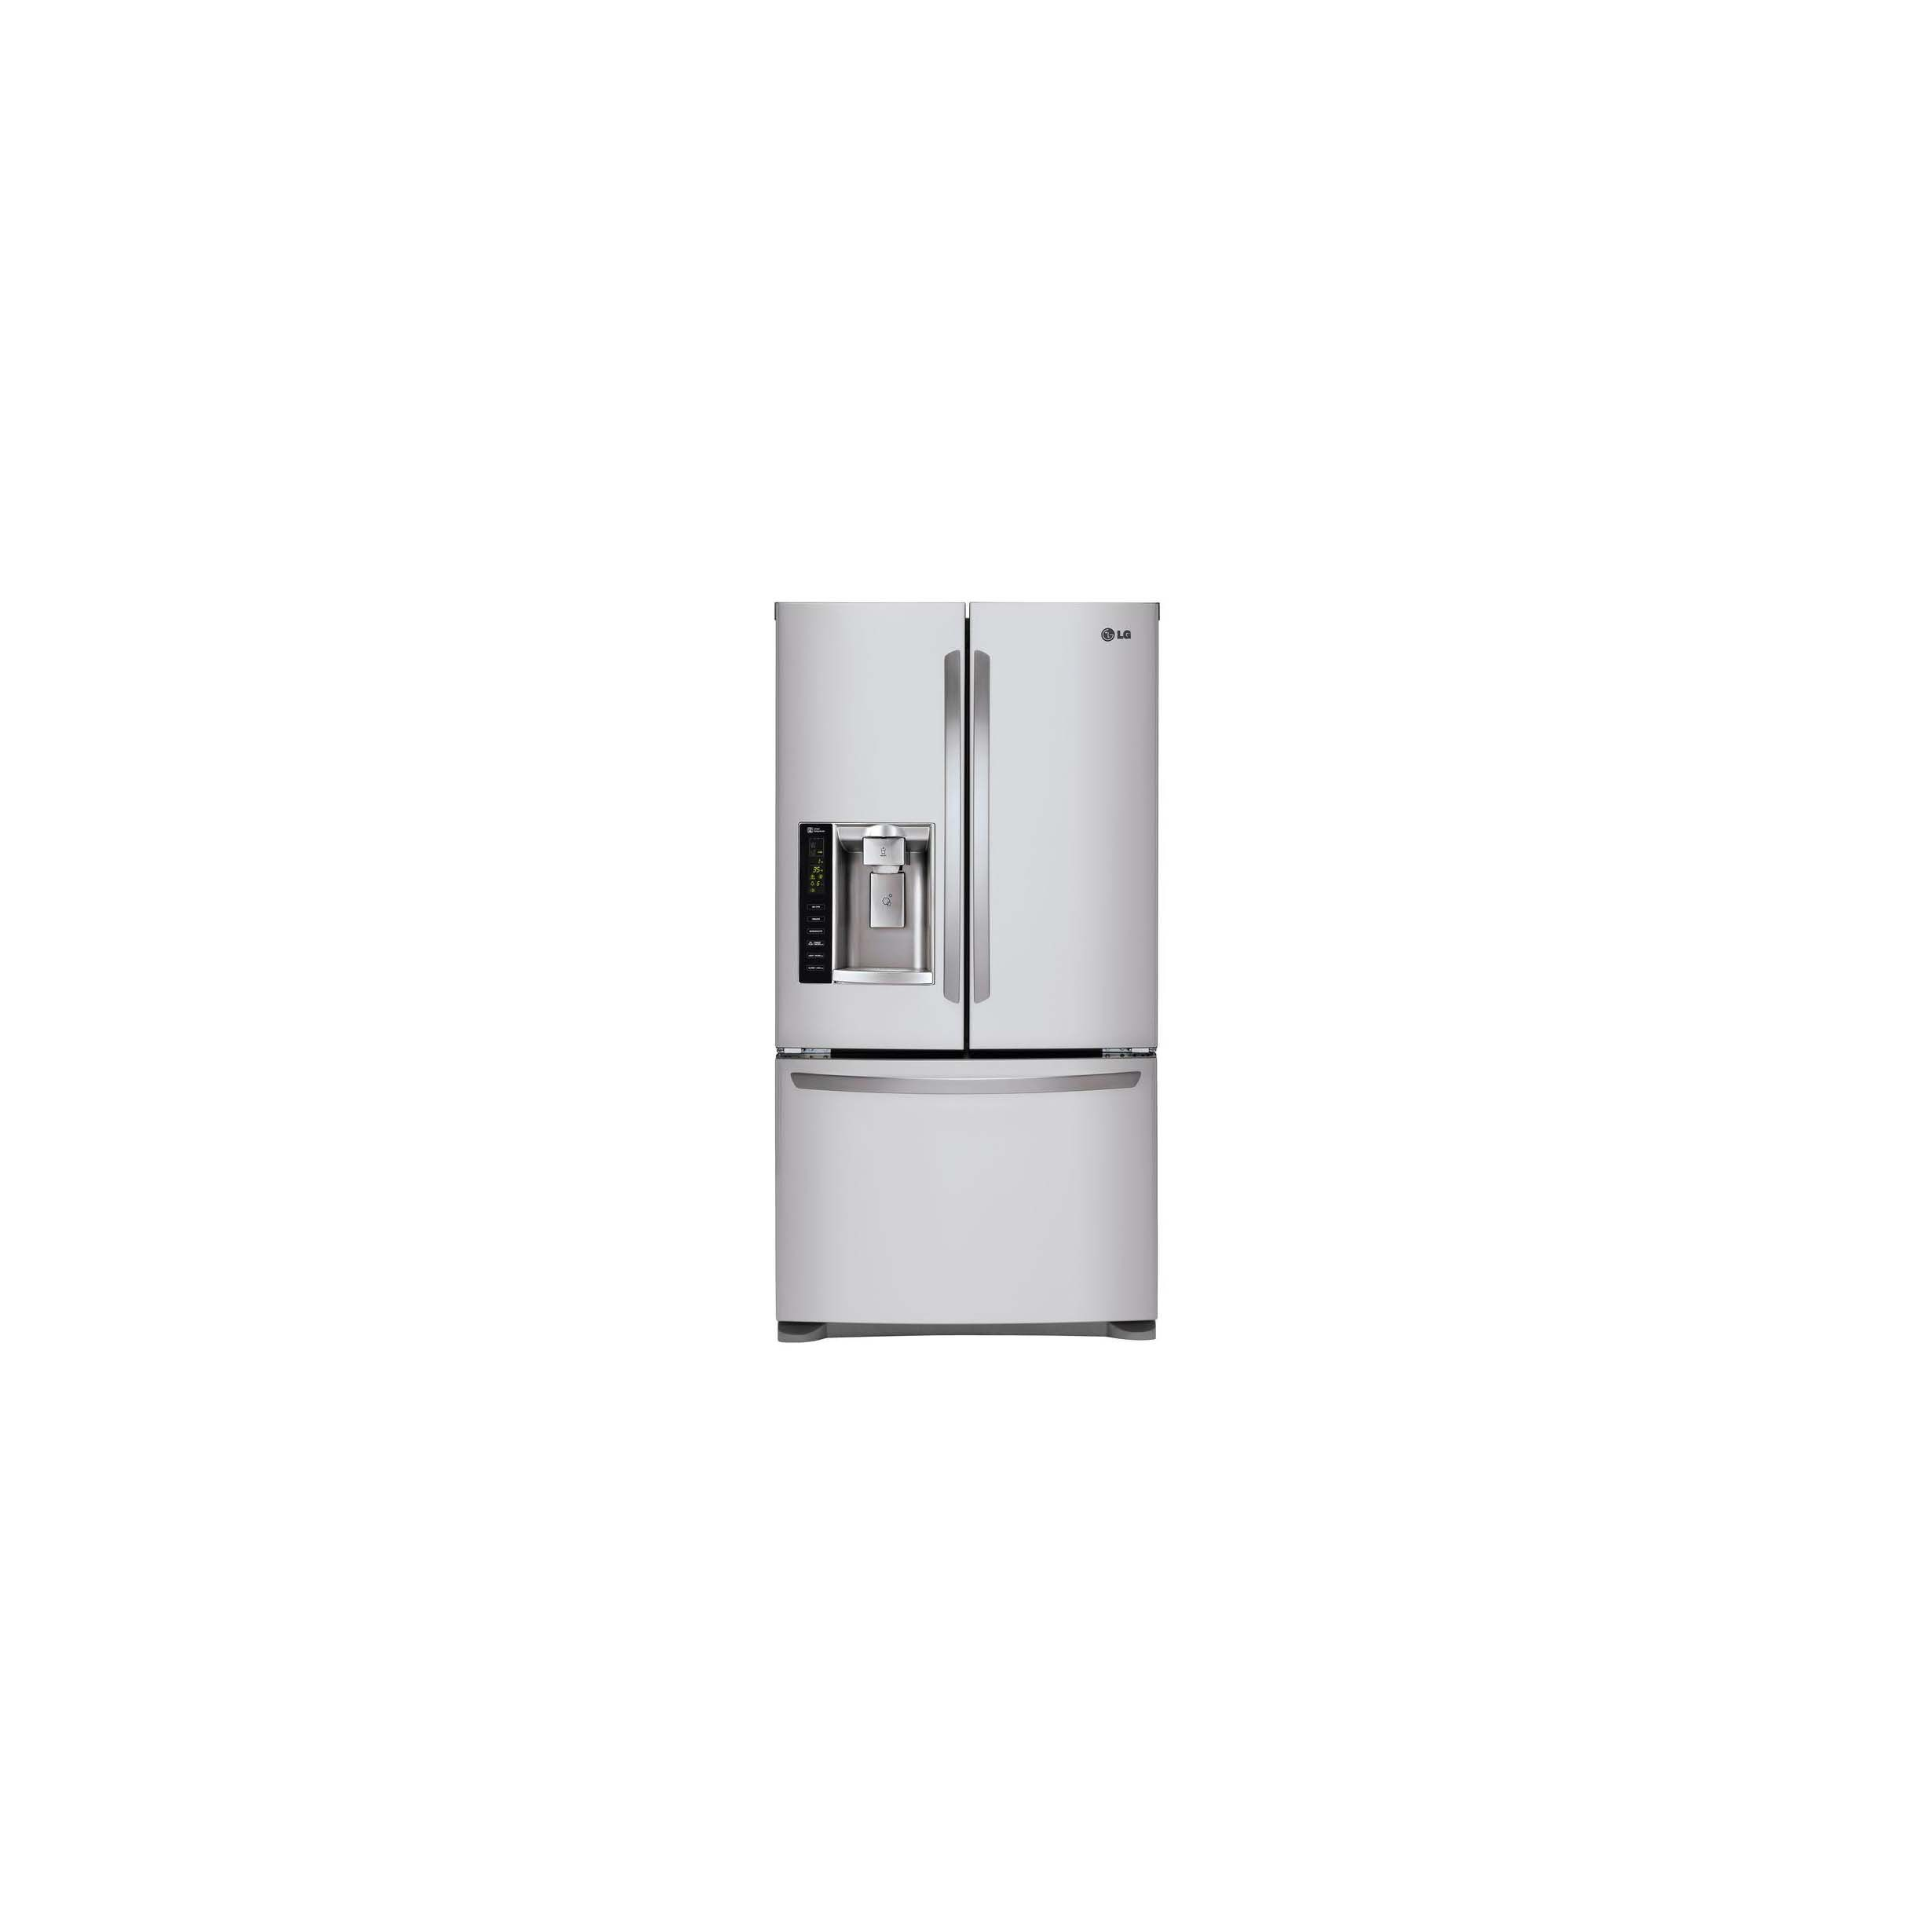 refrigerator smart enabled door in wid hei cu fi p ft w black qlt wi doors prod stainless lg